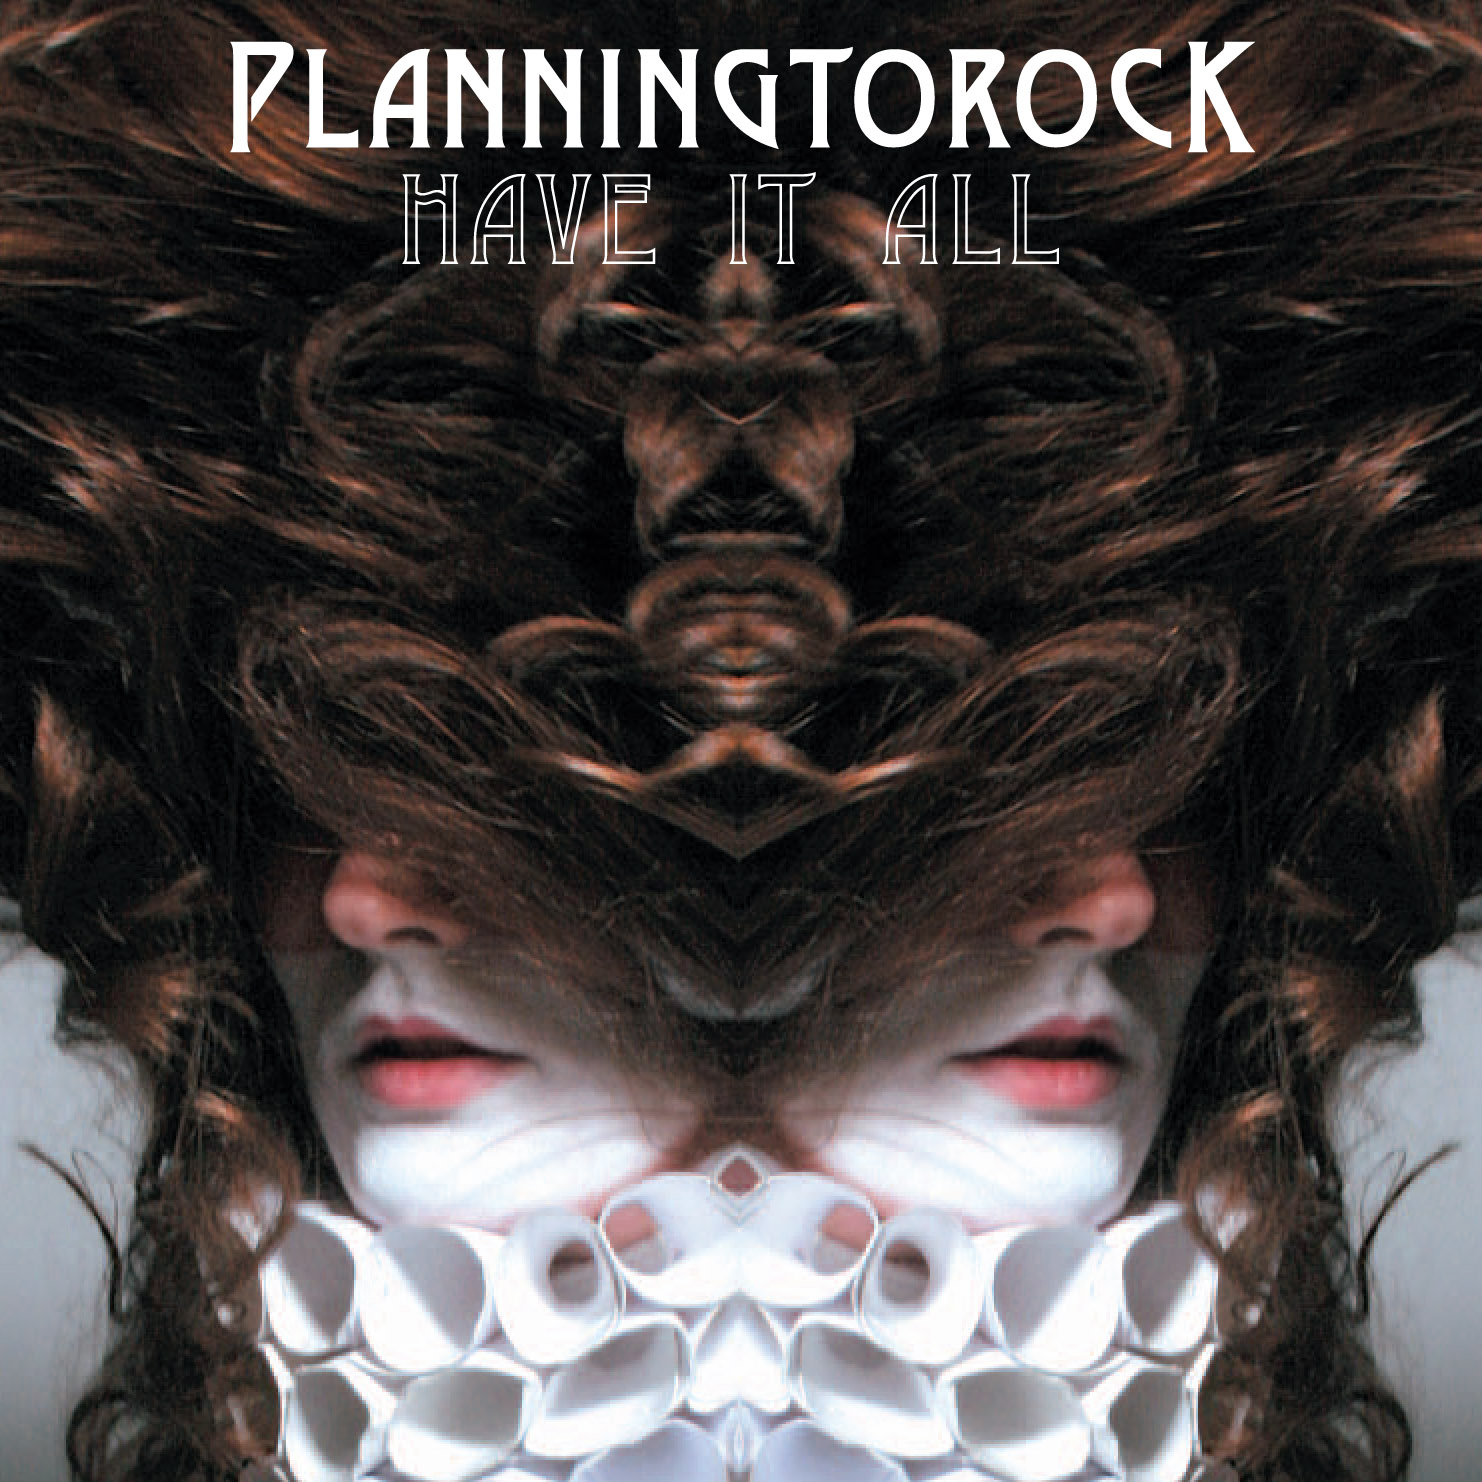 Planningtorock-Have_it_all